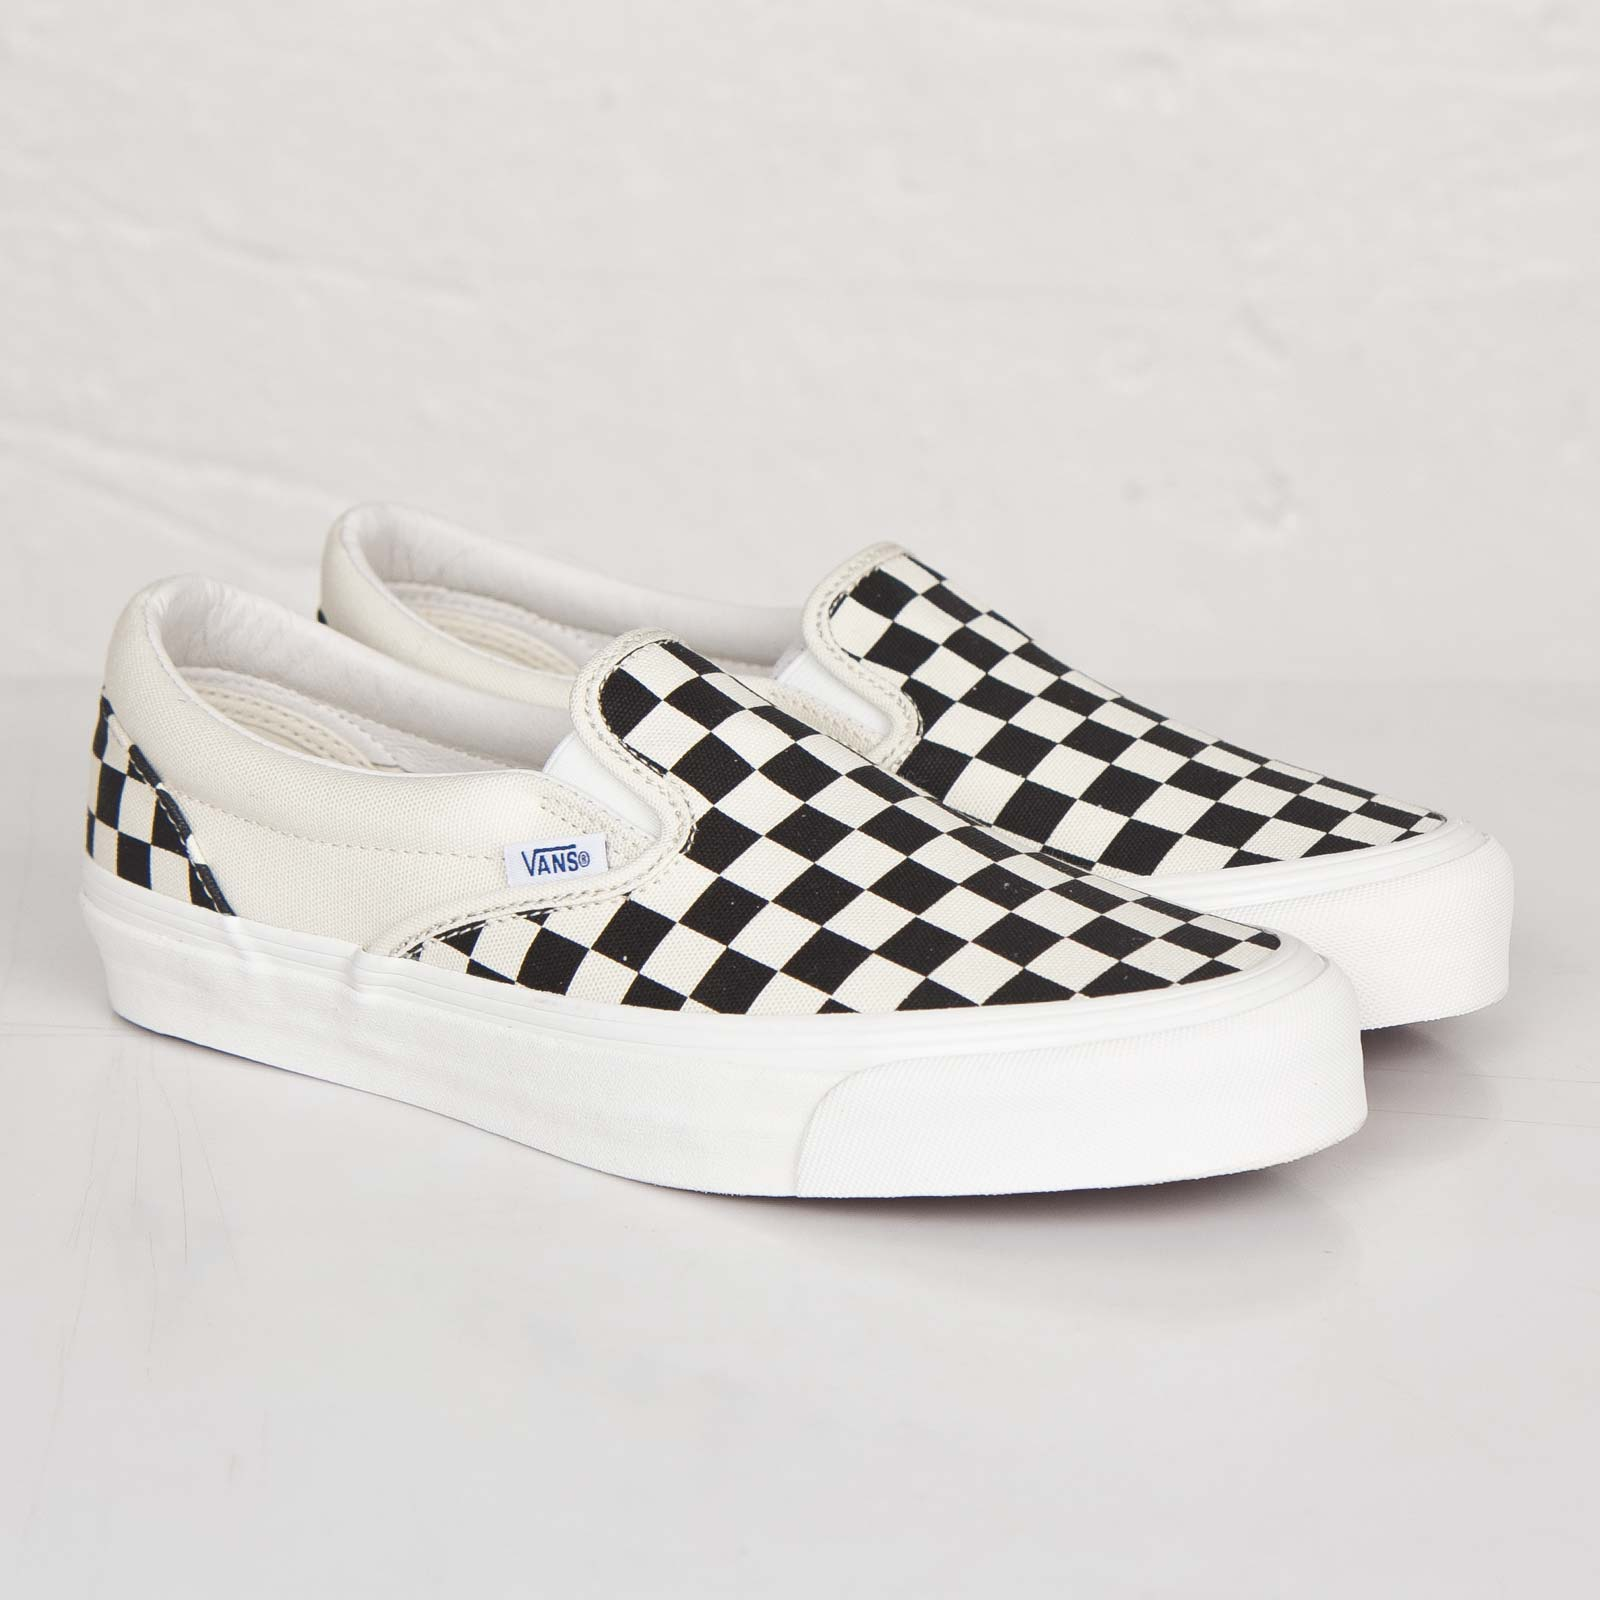 7fa1e7cd28f Vans OG Classic Slip-On DO NOT USE - Udff8l - Sneakersnstuff ...